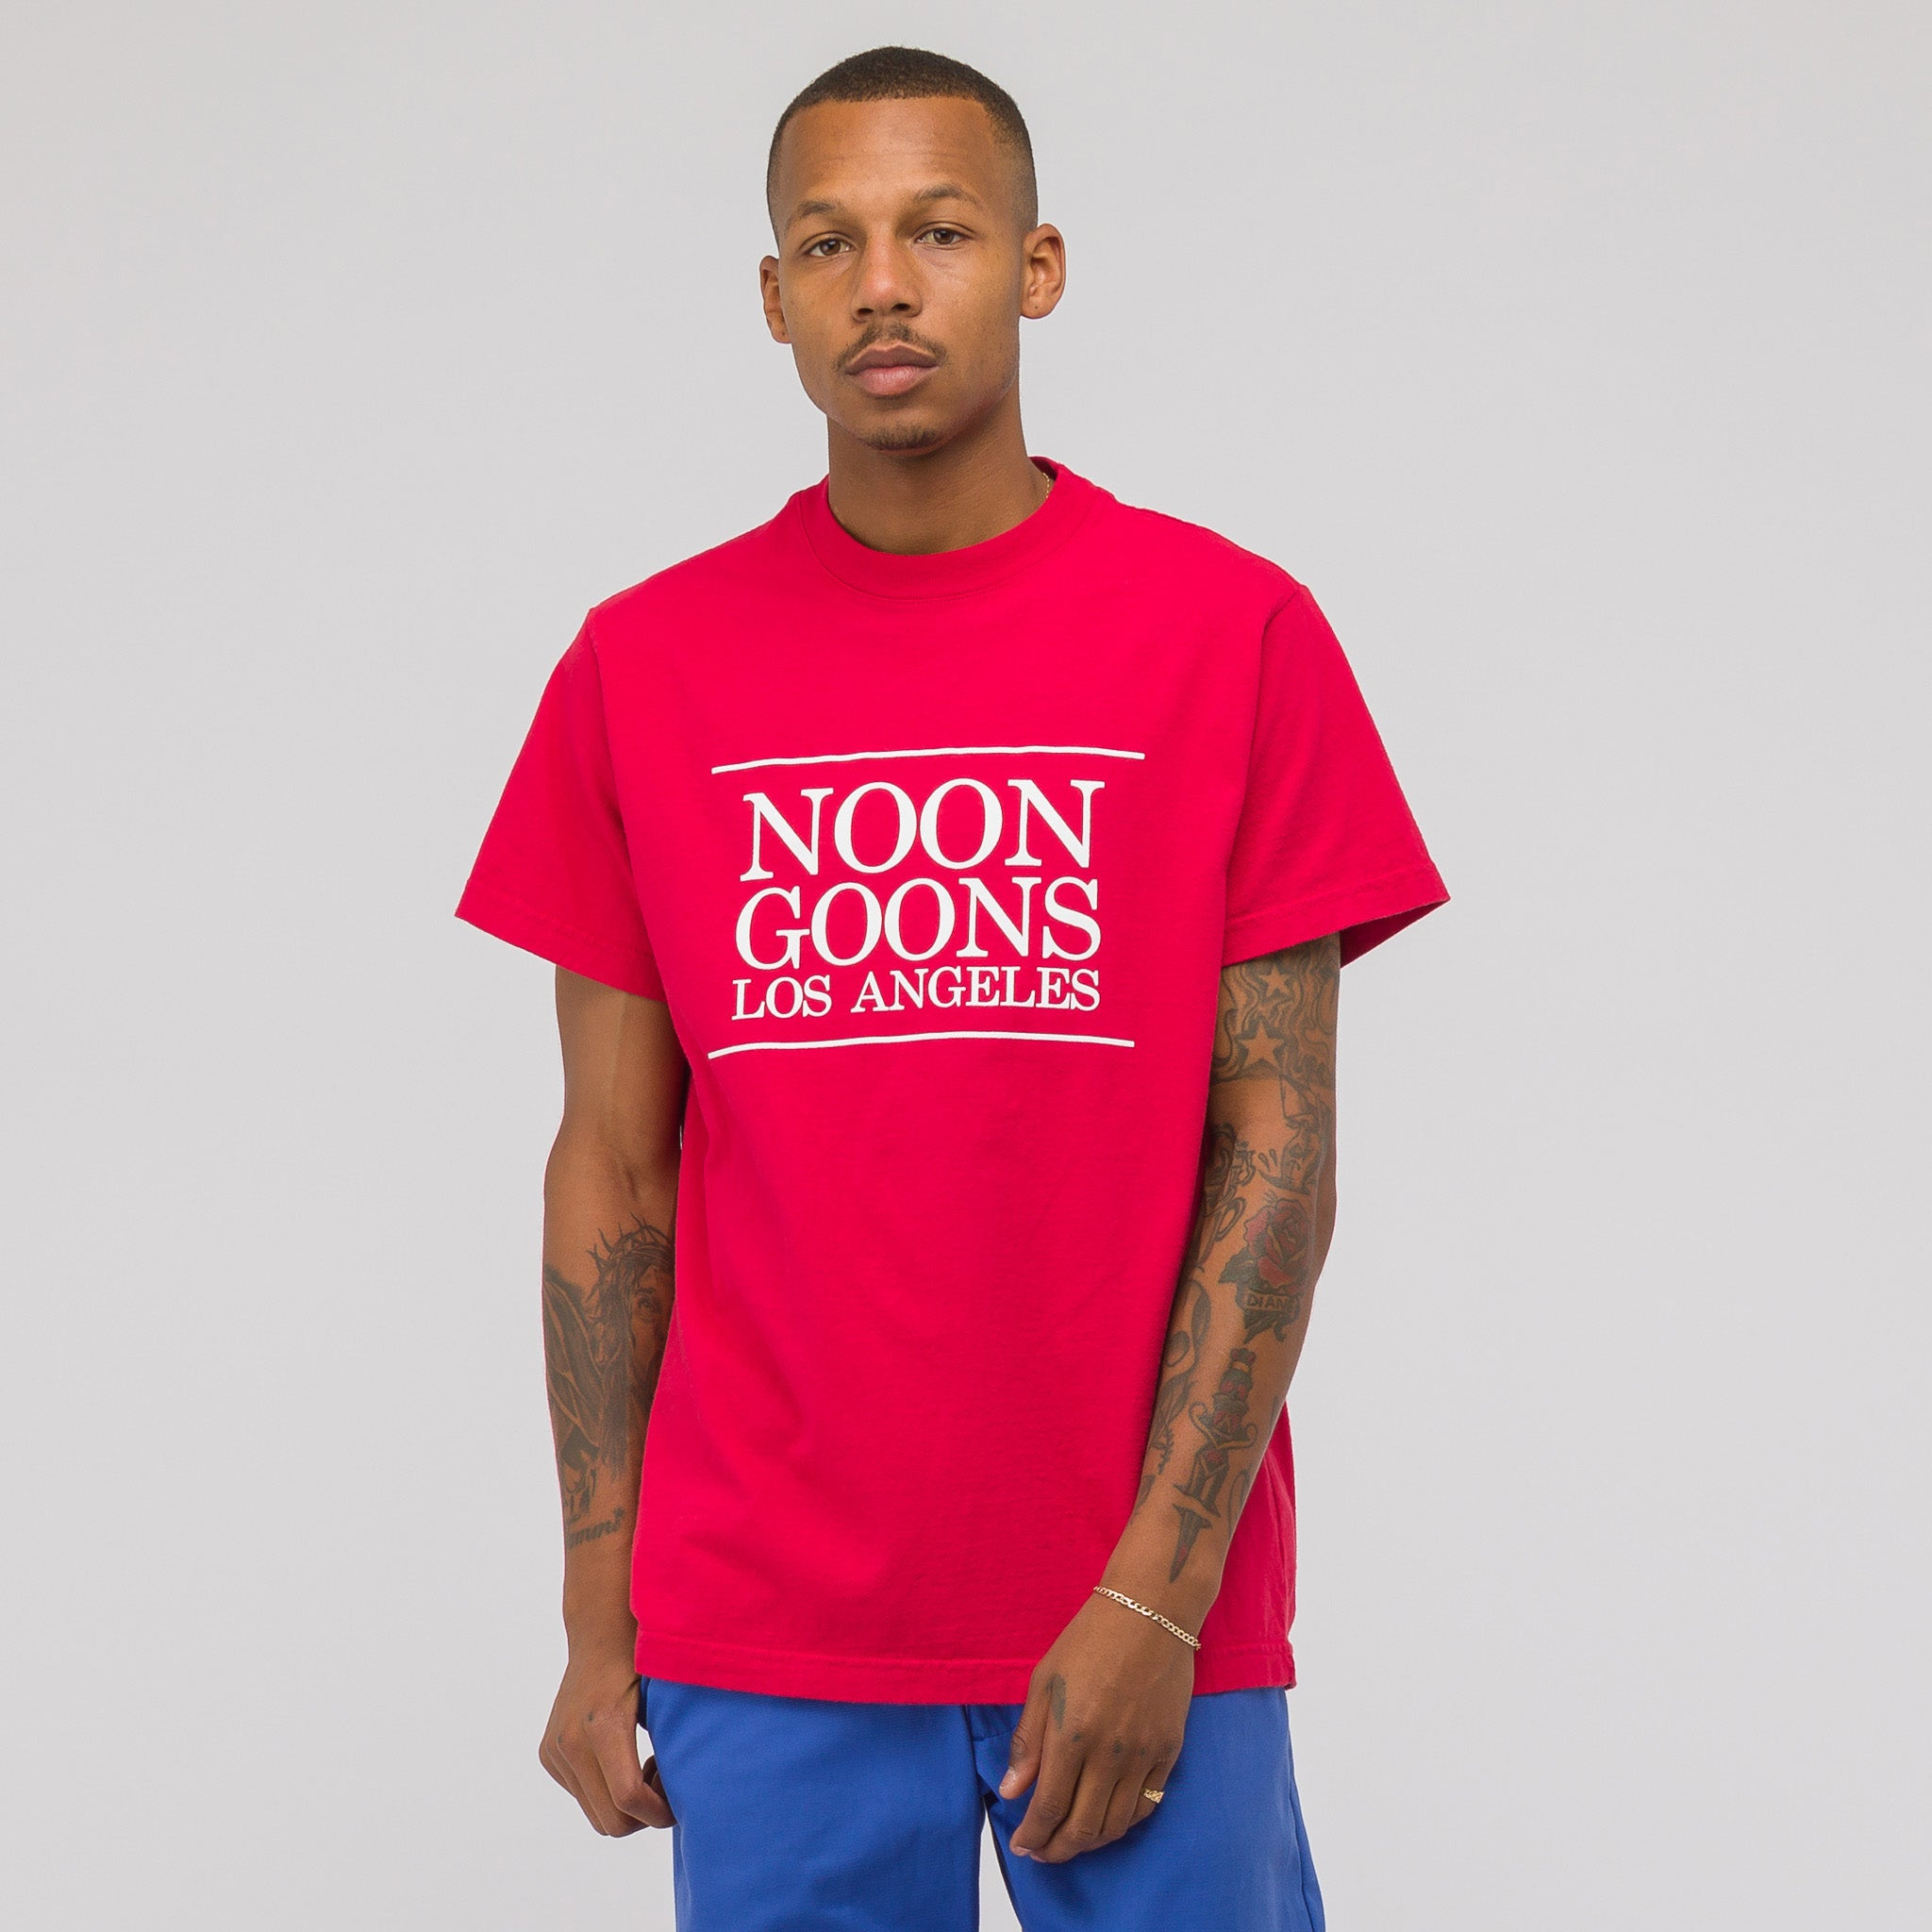 Los Angeles Short Sleeve T-Shirt in Red